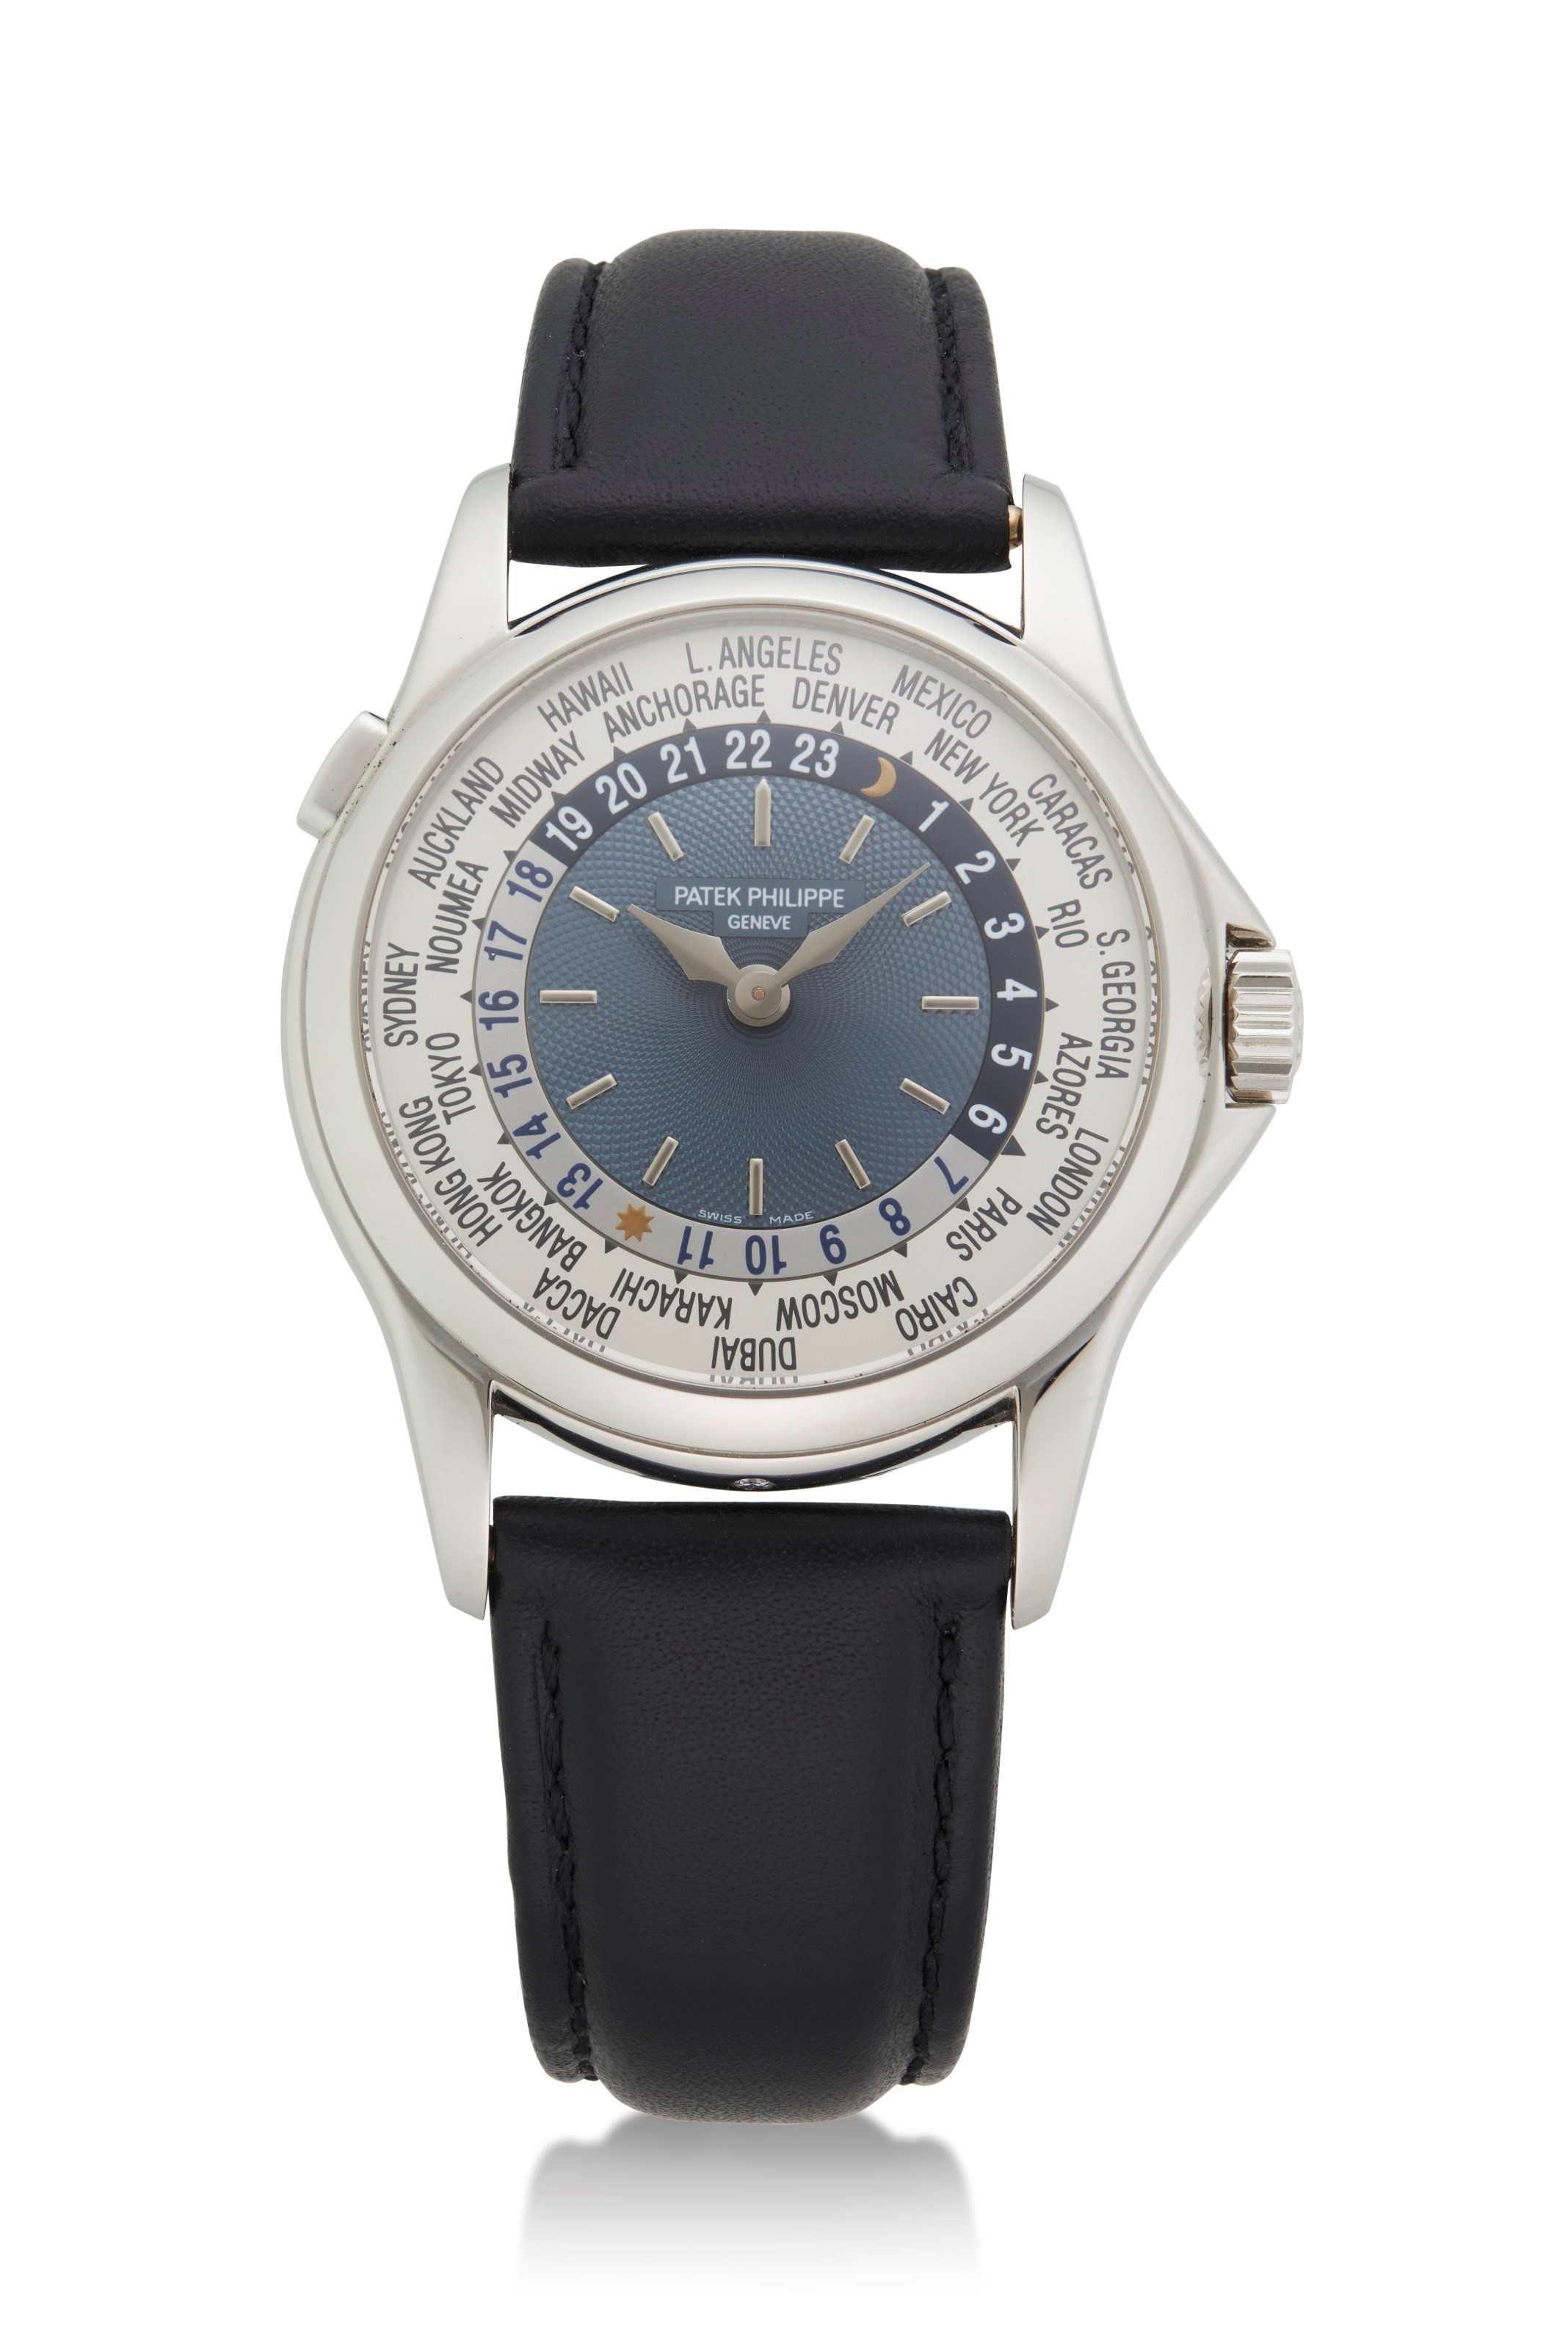 Patek Philippe, platinum World Time wristwatch. Ref. 5110P. Sold for $37,500 on 26 April 2021 at Christie's, Online